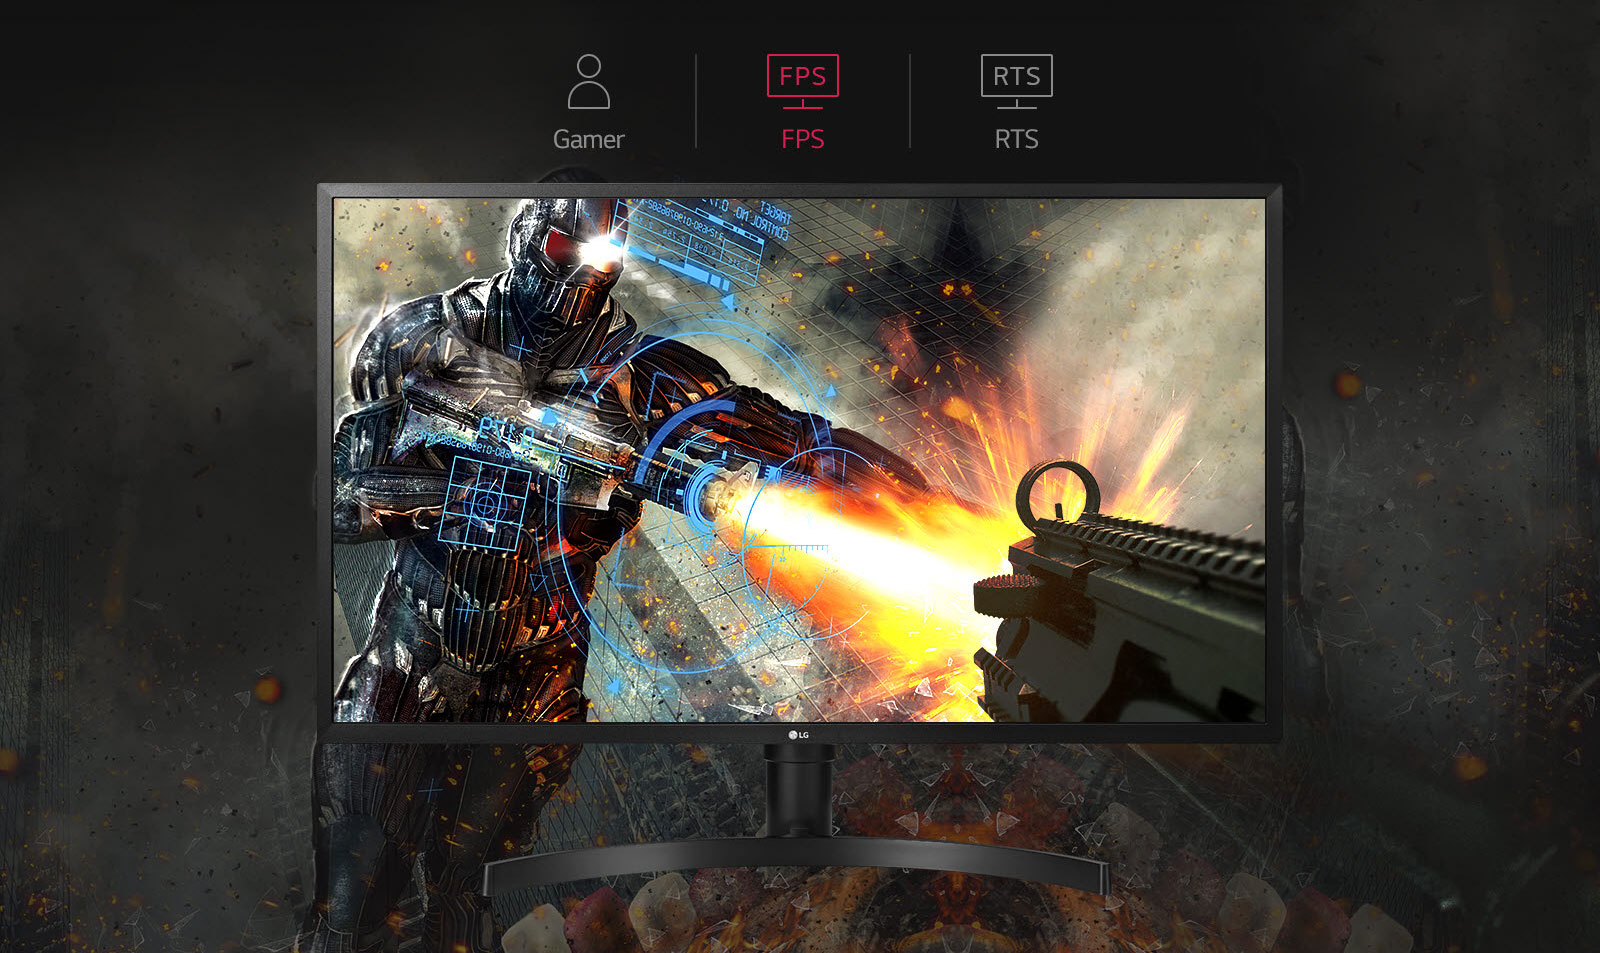 LG 32UK550-B monitor facing forward with an FPS game showing a future soldier standoff